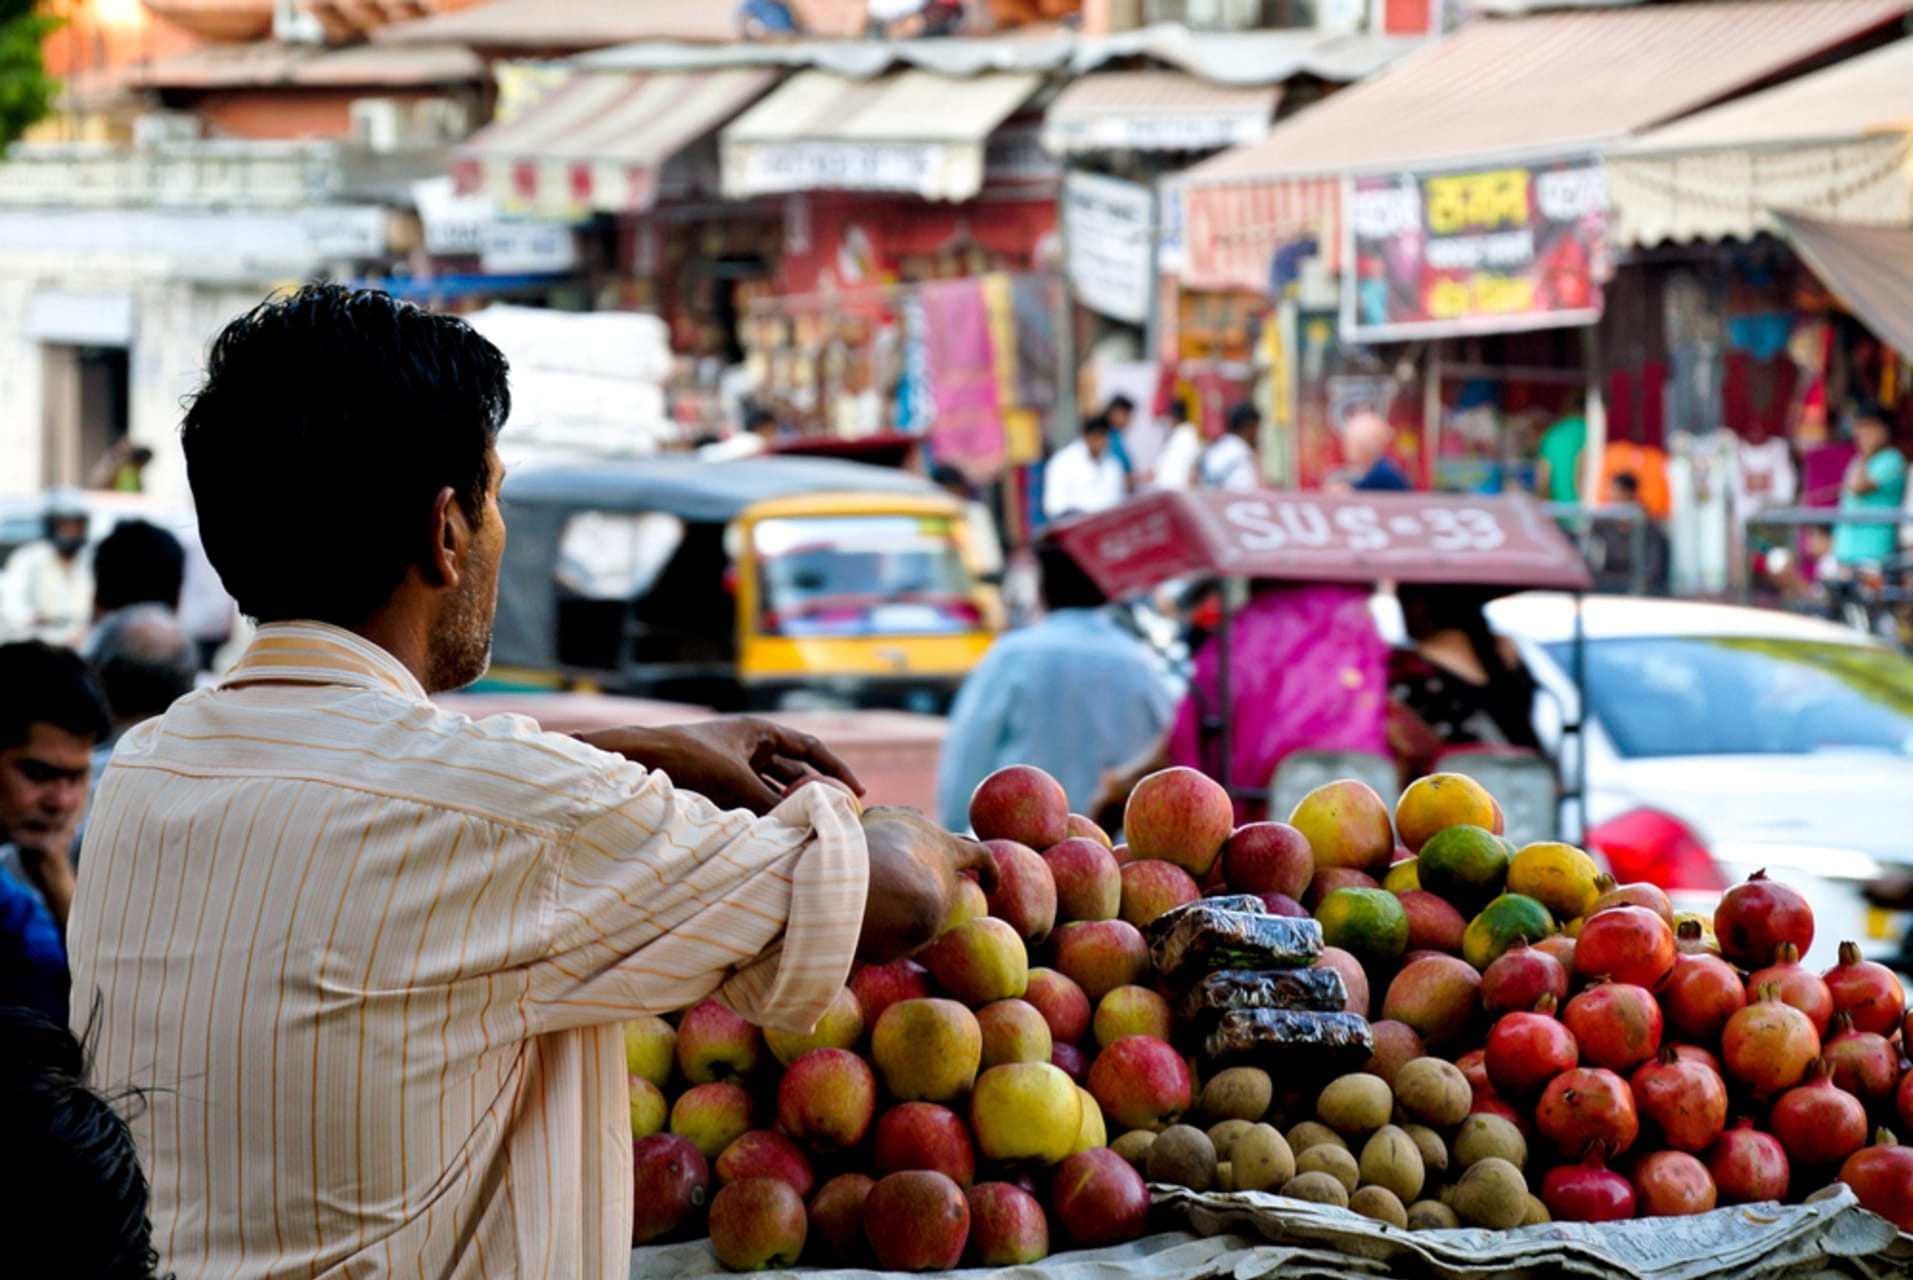 Agra - A glimpse of Indian culture: Agra Market Walking Tour